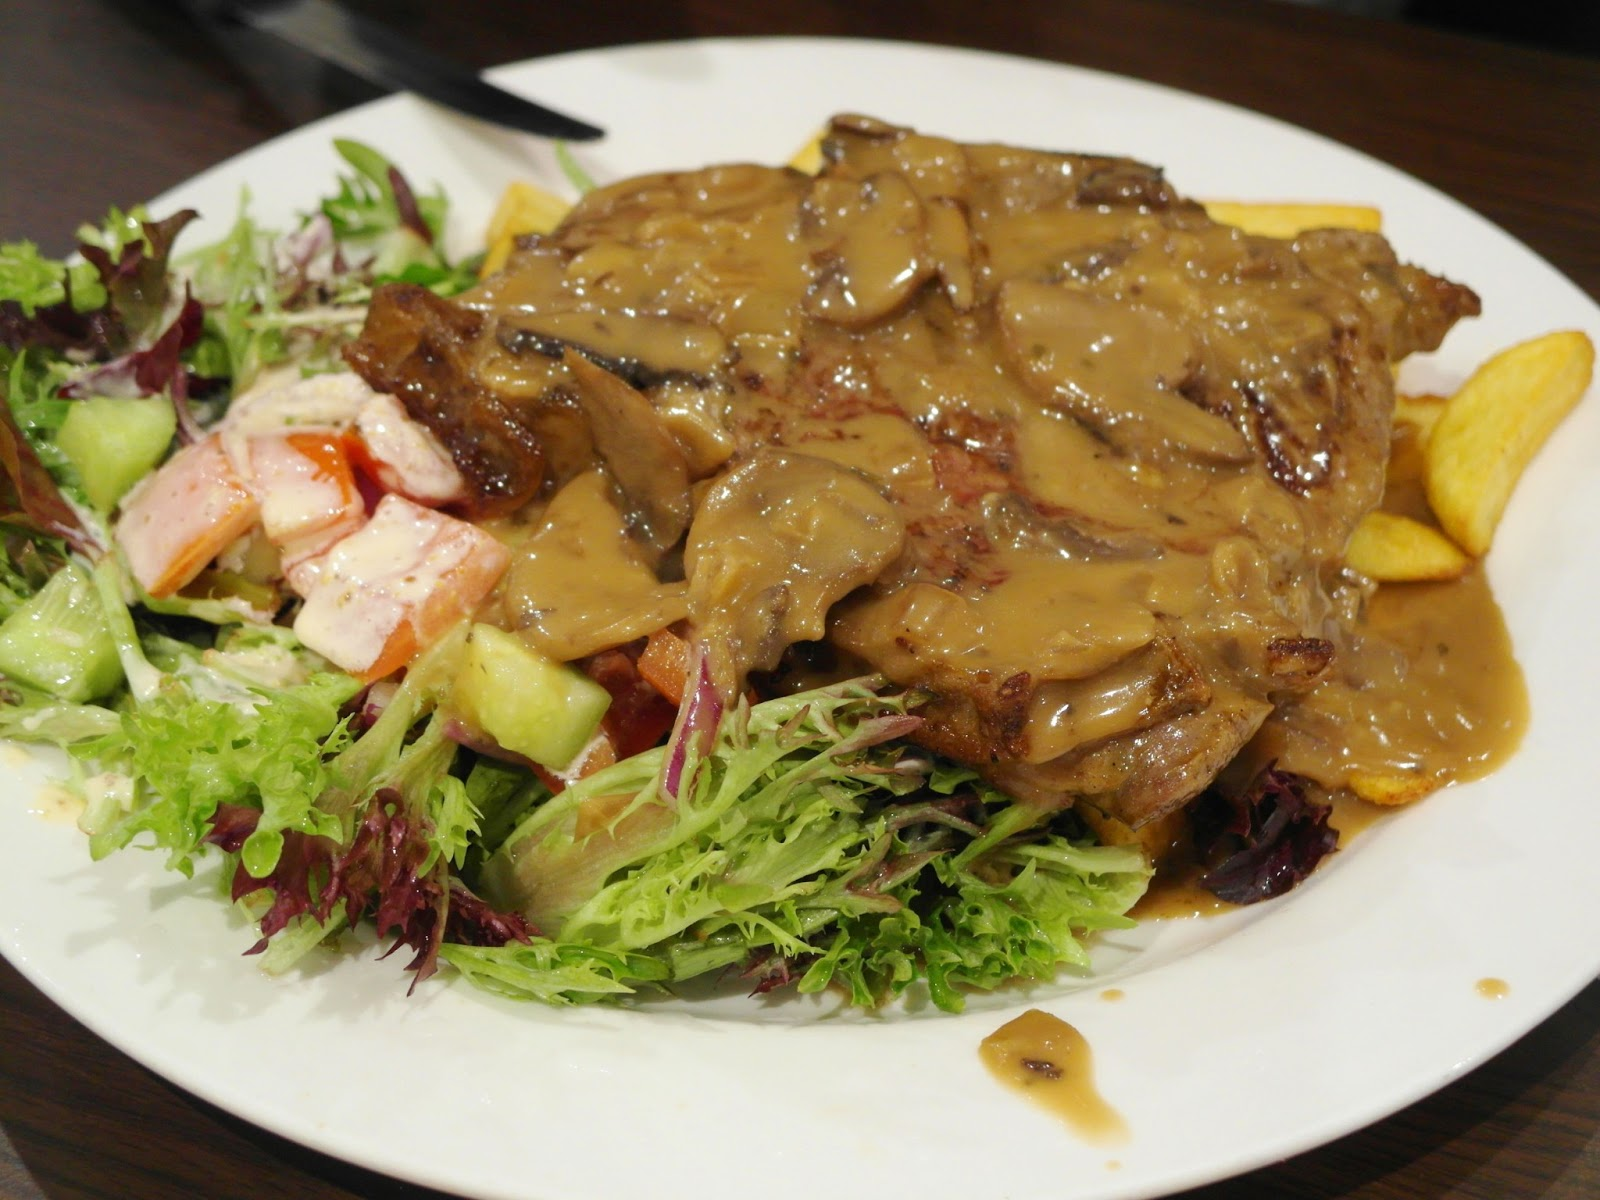 Medium cooked steak with mushroom sauce served with salad and chips i wish the steak had been thicker but i guess if it had been thicker there would be